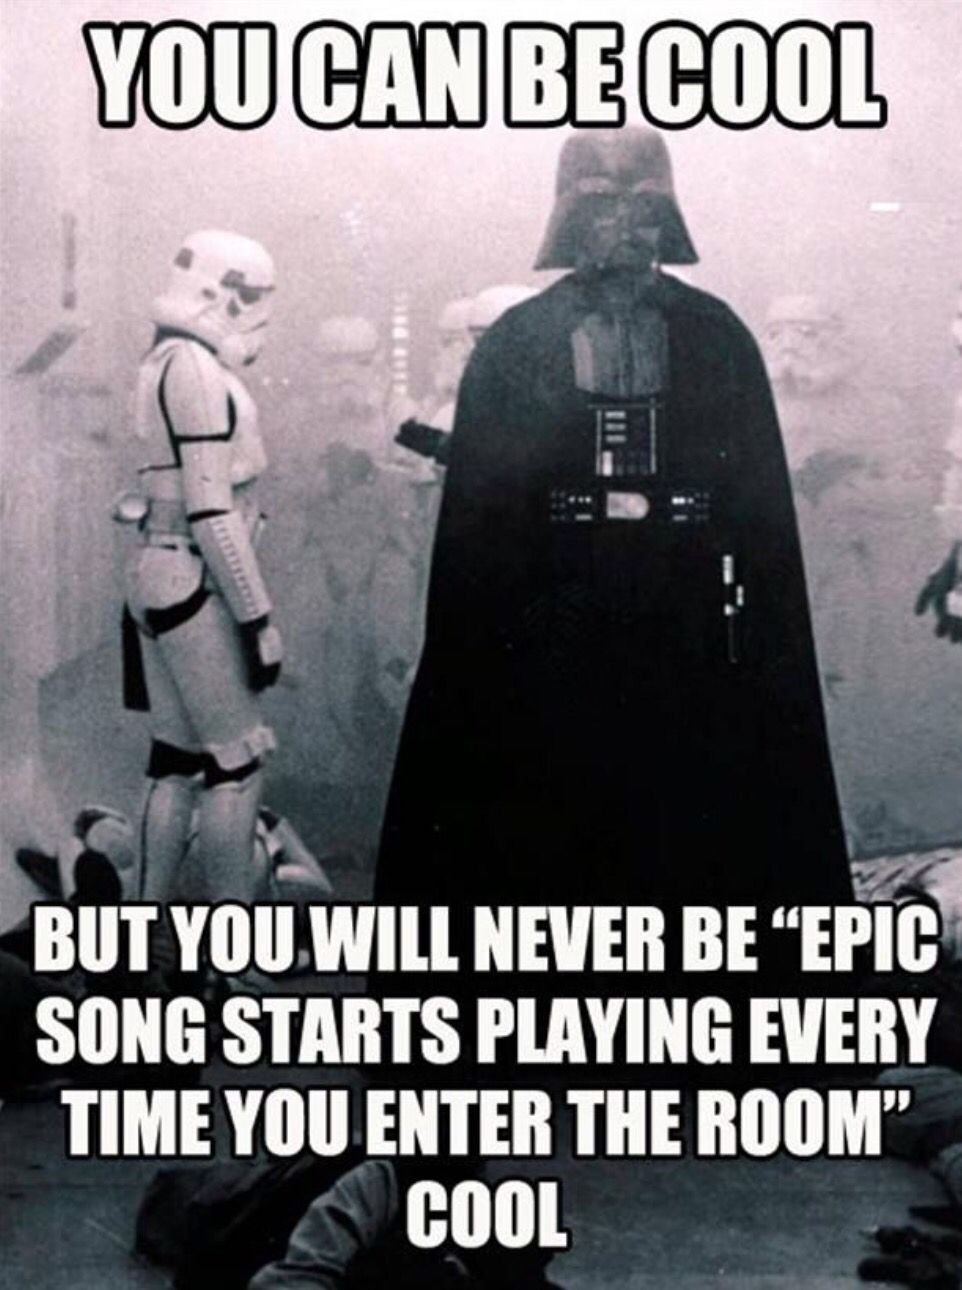 So You Think You Re Awesome Huh Star Wars Memes Star Wars Humor Star Wars Jokes